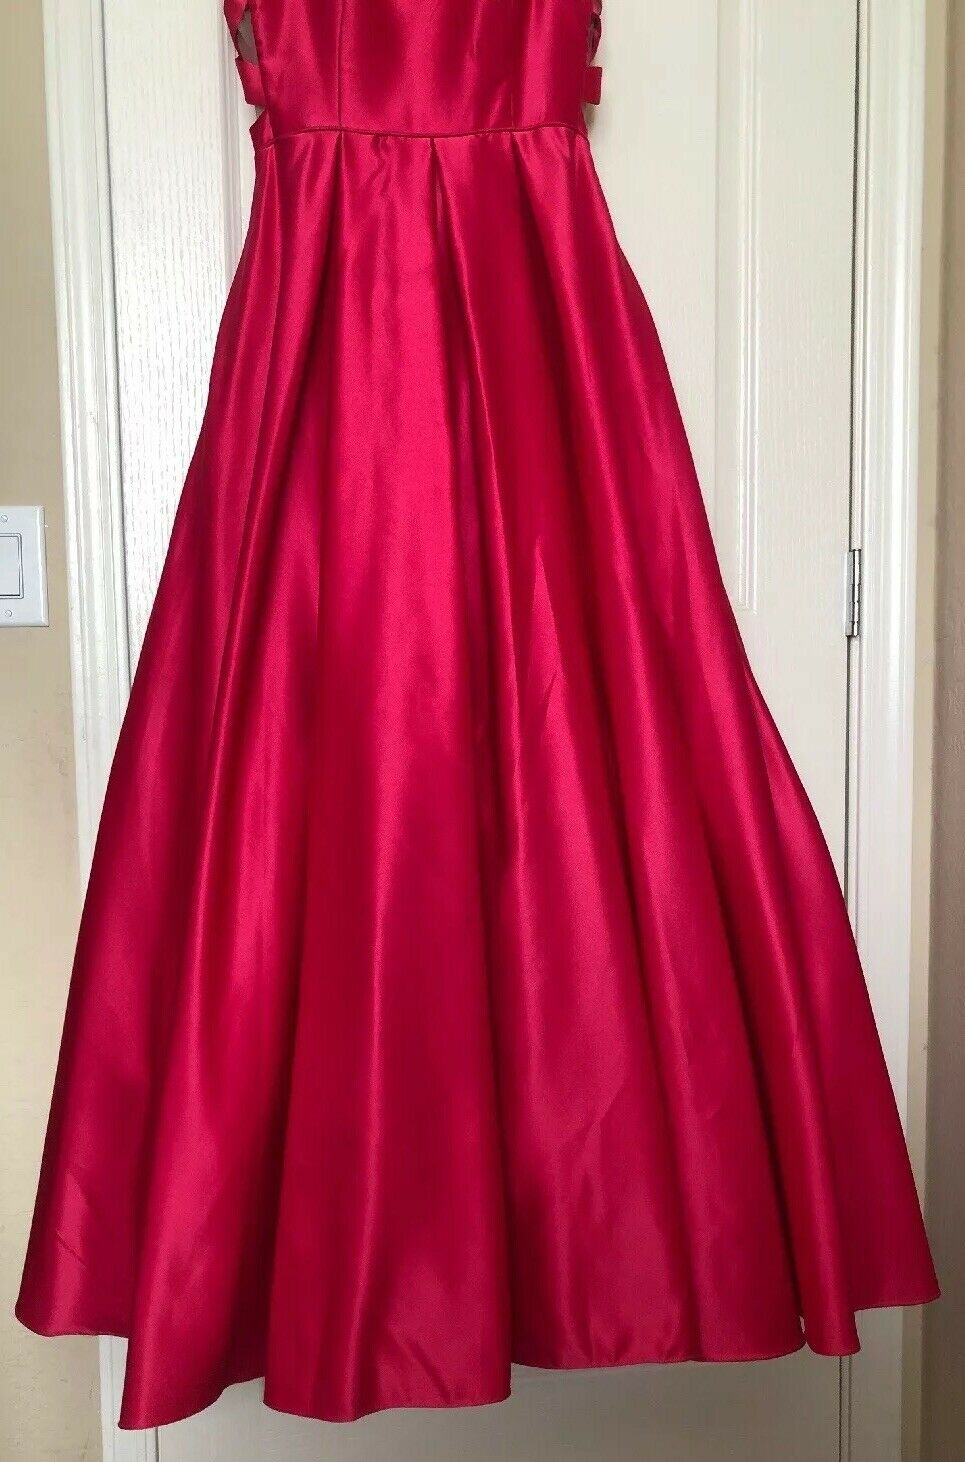 Dillards Pink Long Ball Gown Prom Dress Strapless Blondie Nites Nites Nites By Stacy Sklar 9 18a043